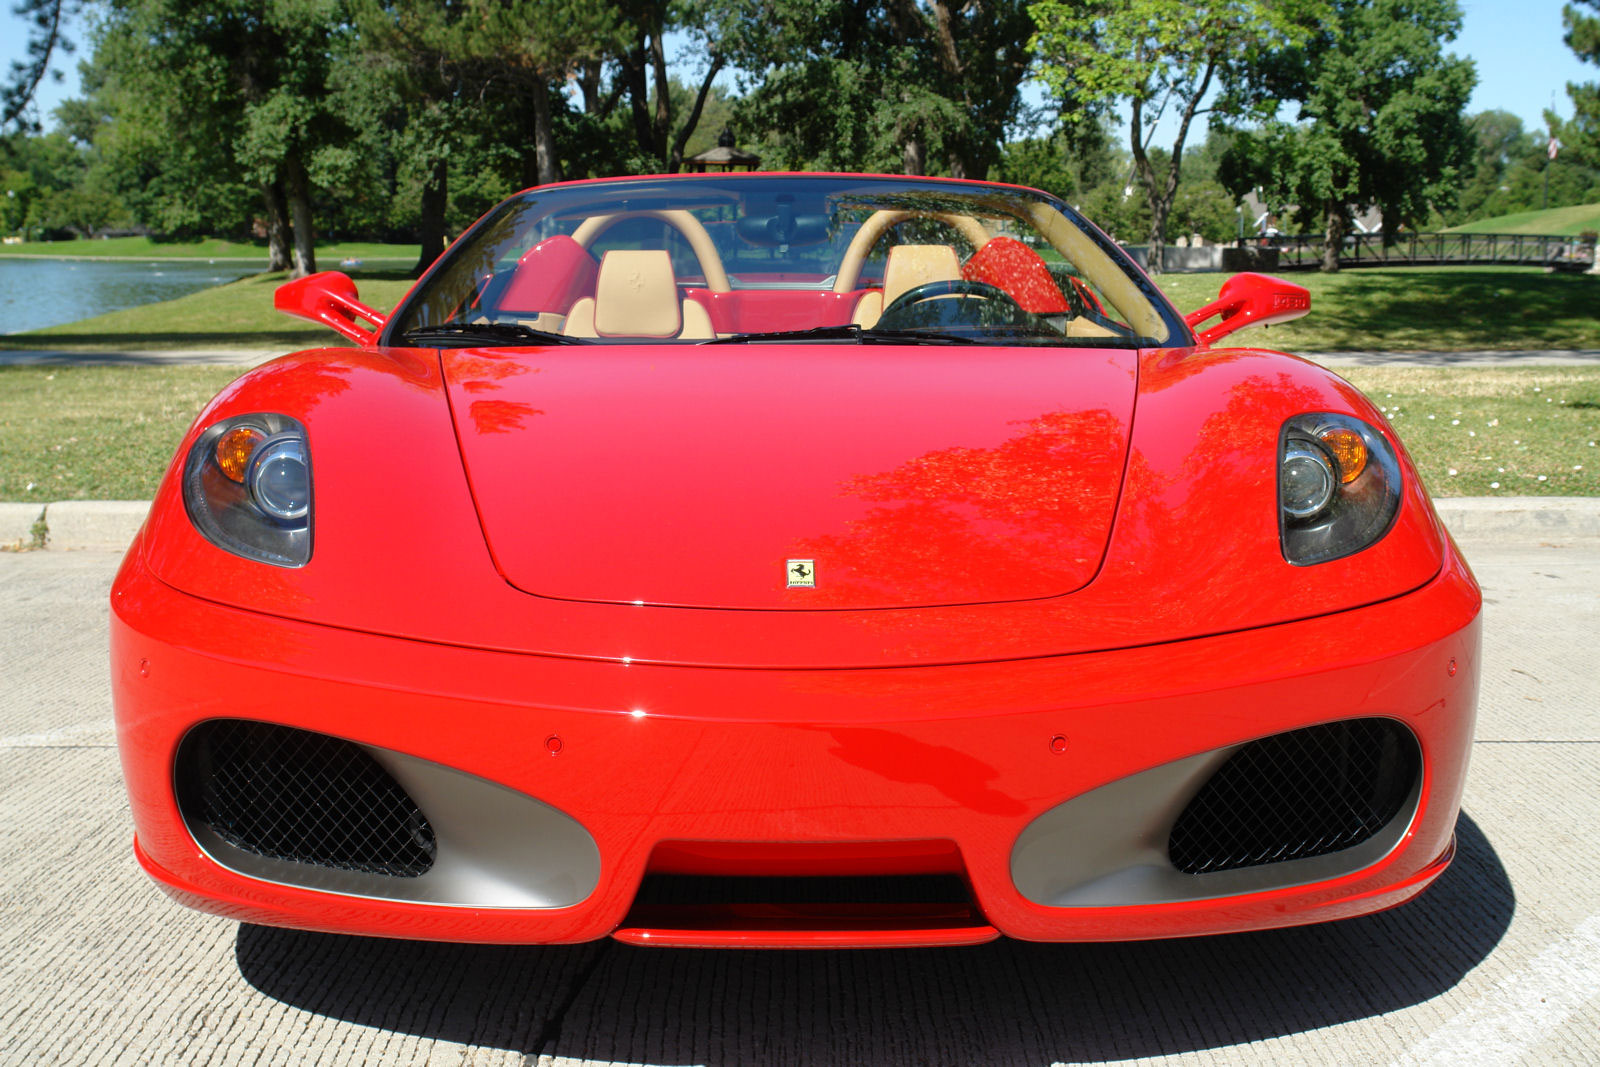 Ferrari 430 Spider F1 &#8211; The Most Expensive Item On eBay